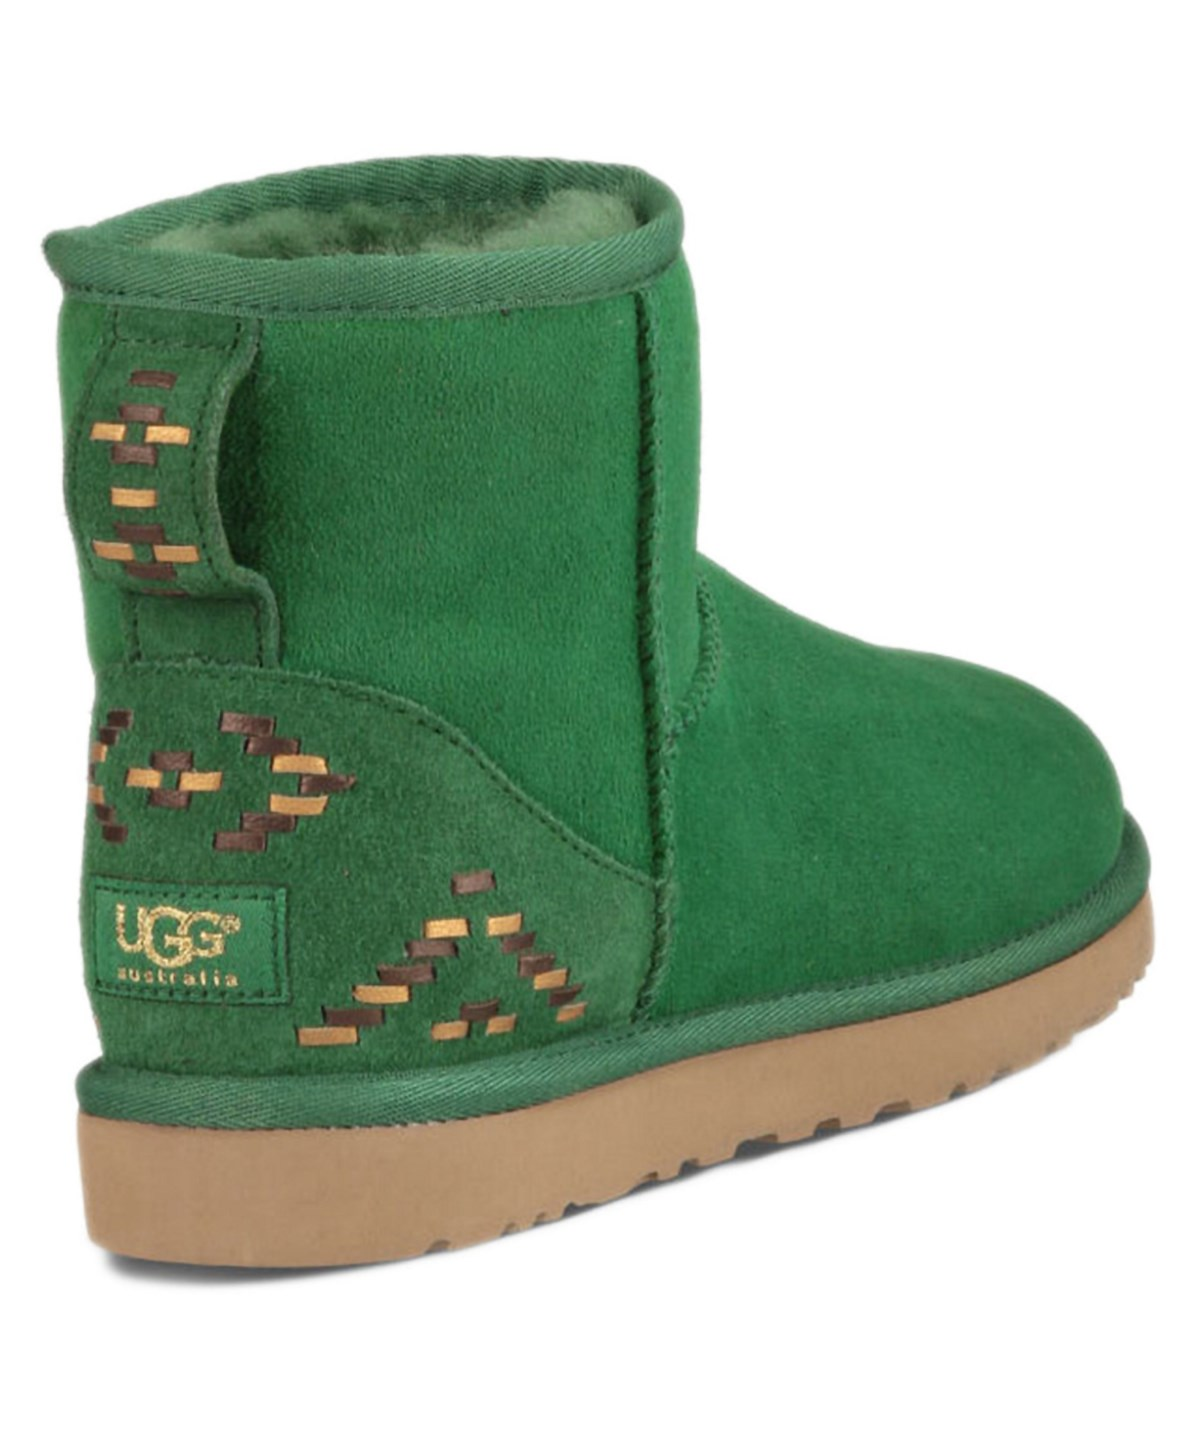 66f69b66d04 Ugg Classic Mini Rustic Weave Twinface Sheepskin Boot' in Green